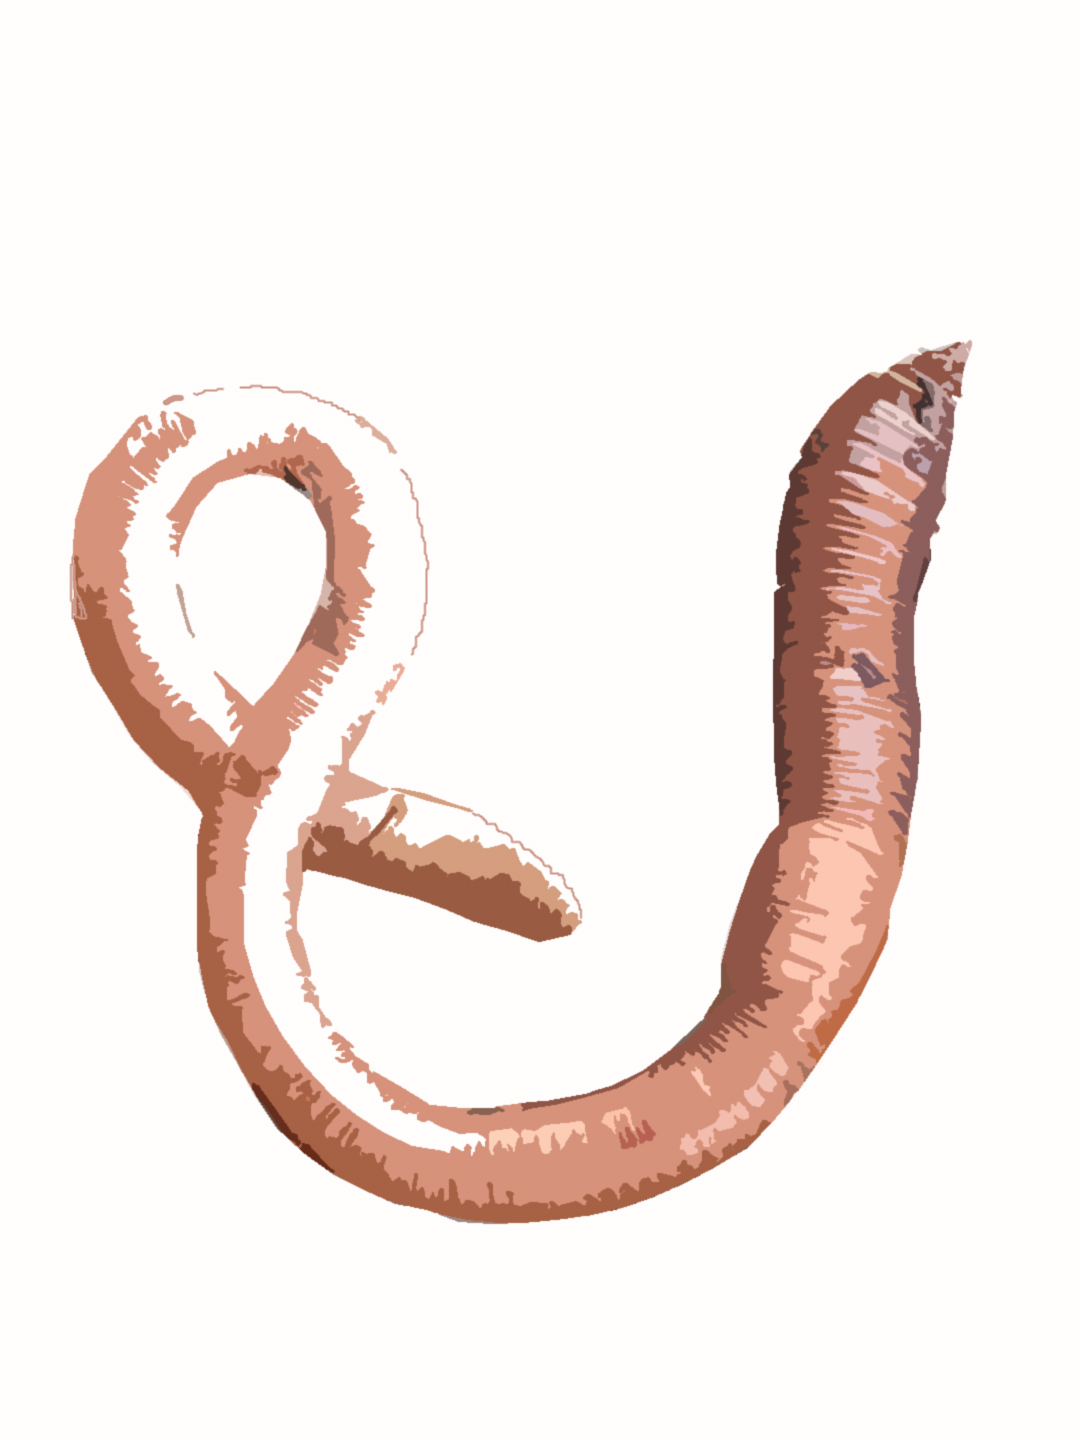 how to grow earthworms at home